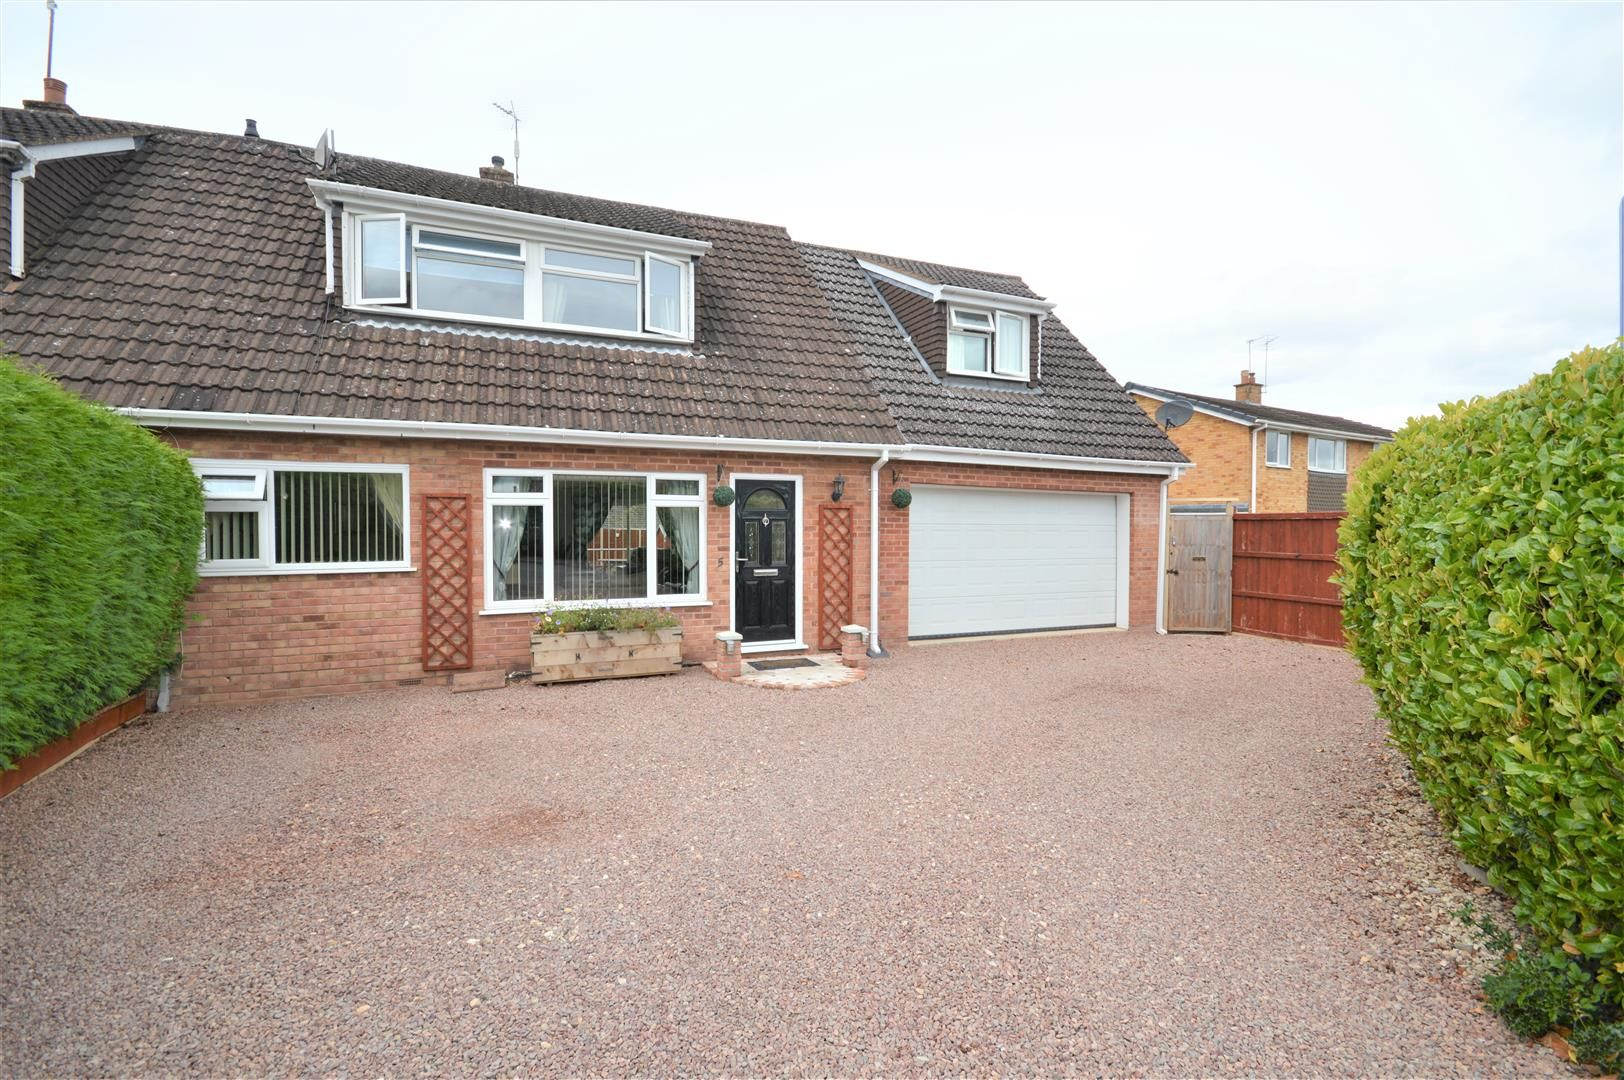 4 bed semi-detached for sale in Clehonger - Property Image 1